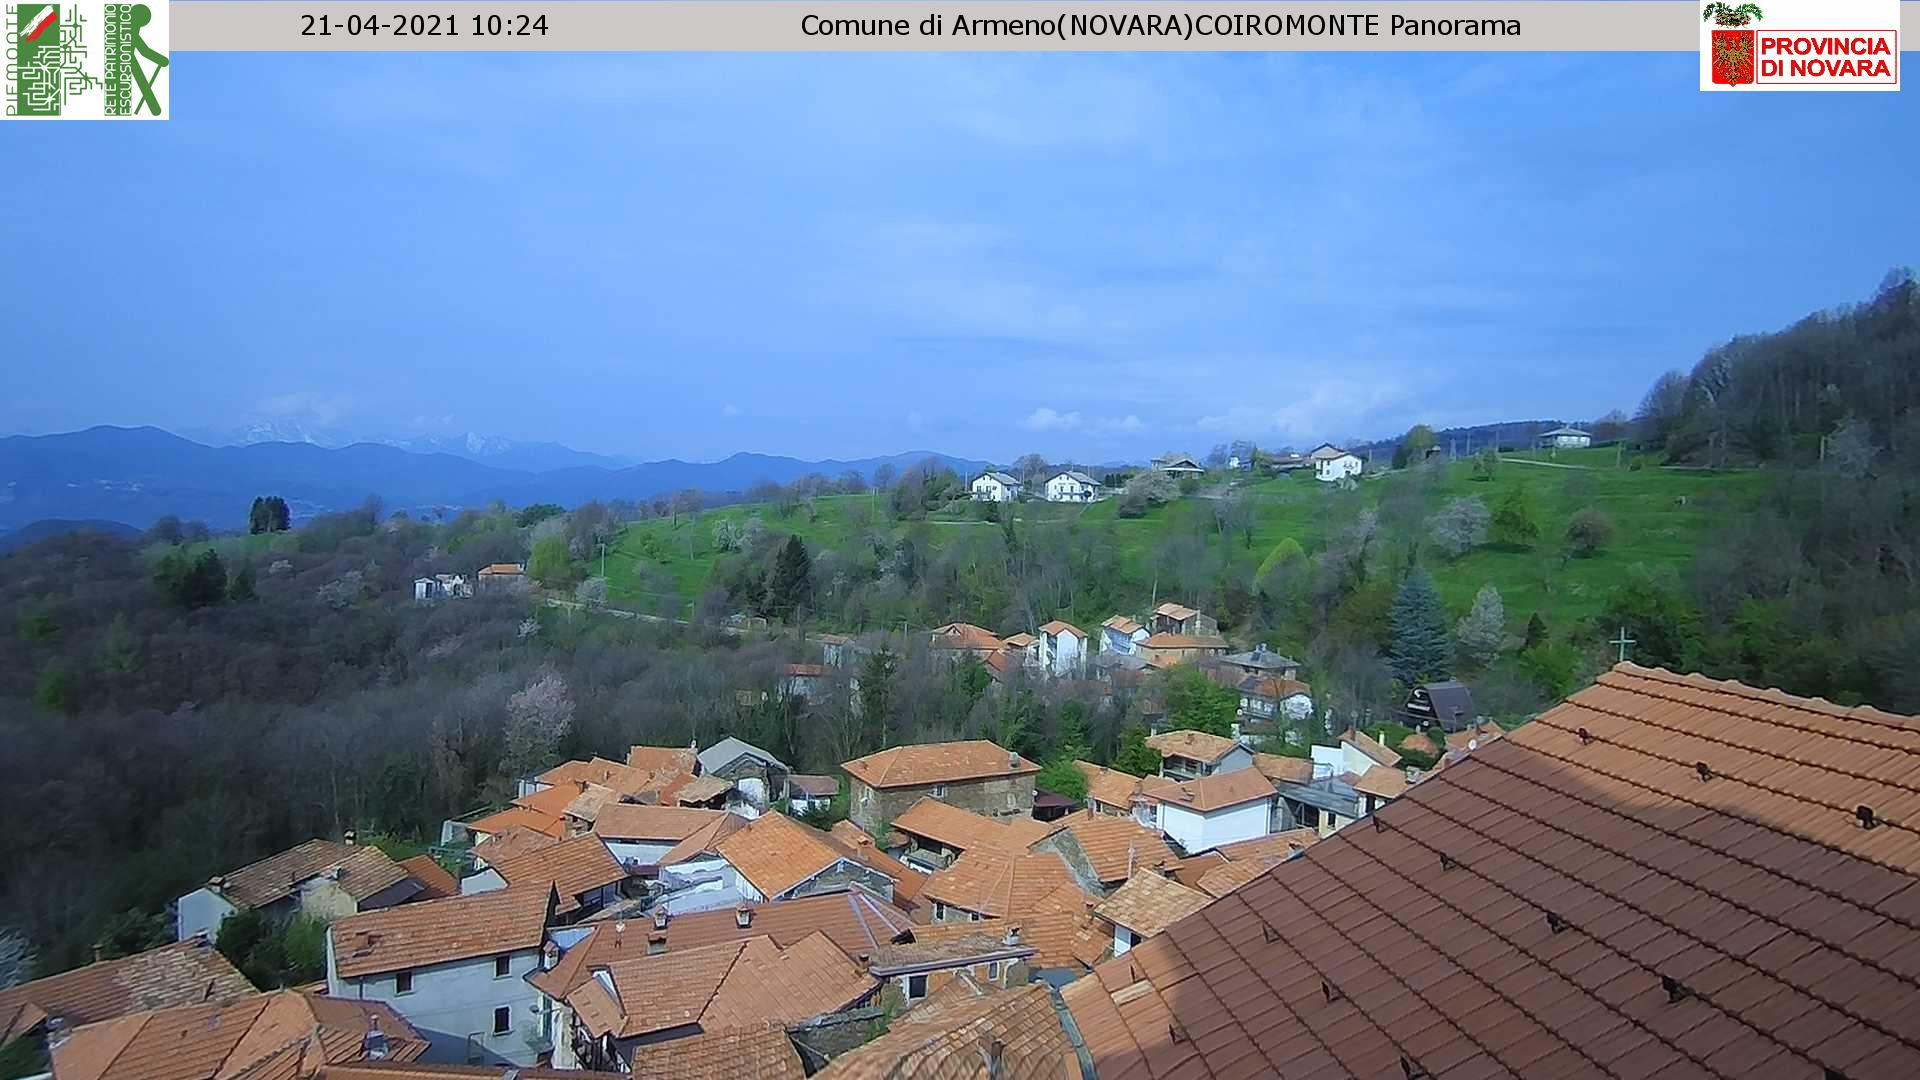 Live from Armeno! Use your browser refresh button to update!